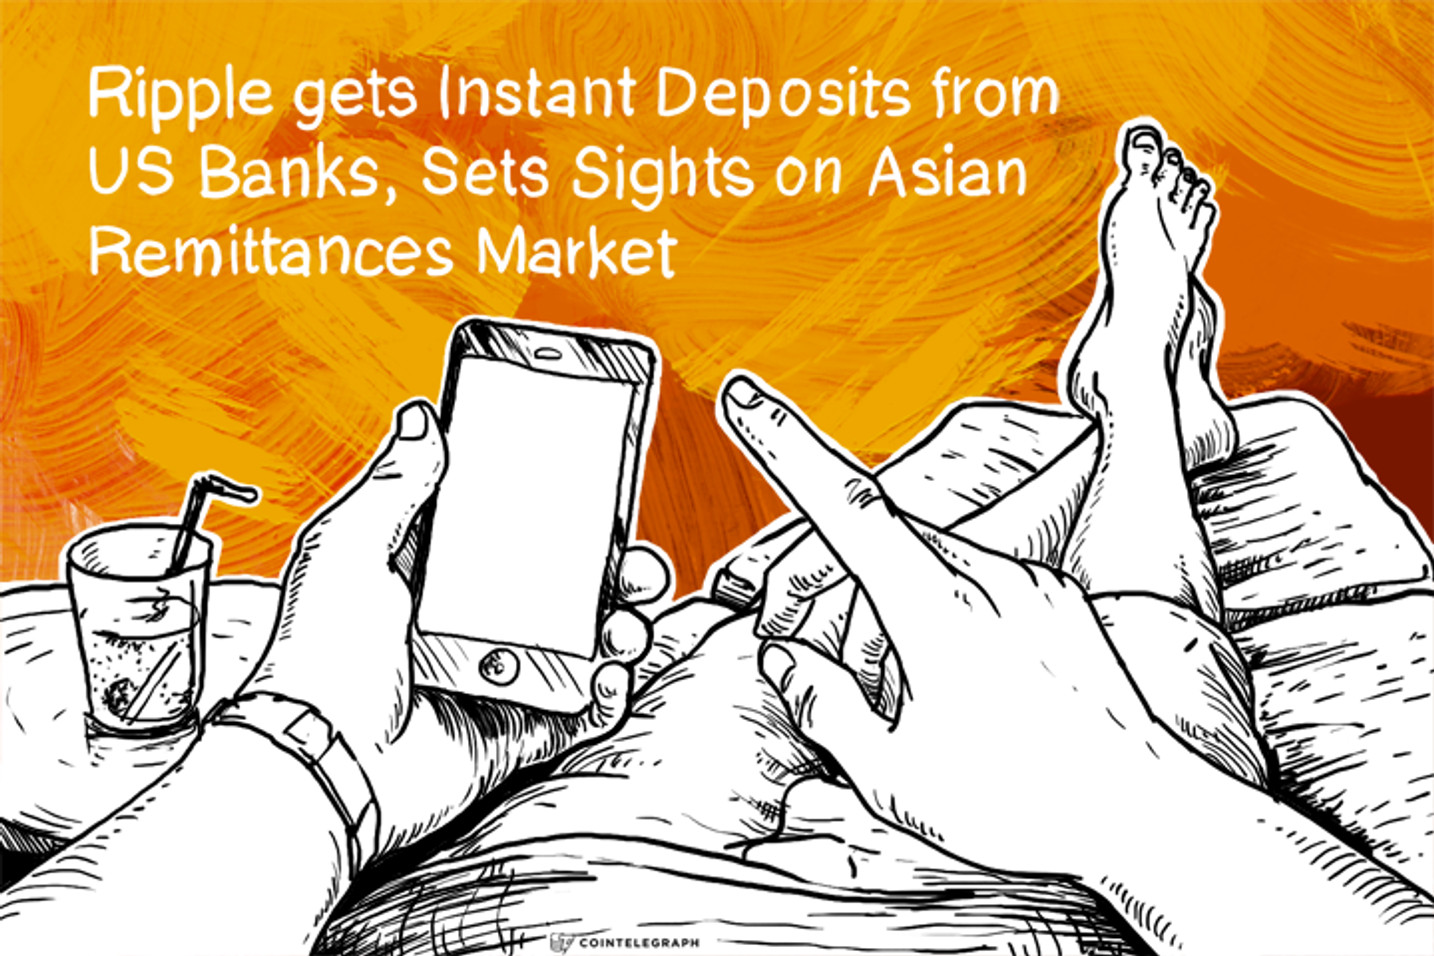 Ripple gets Instant Deposits from US Banks, Sets Sights on Asian Remittances Market